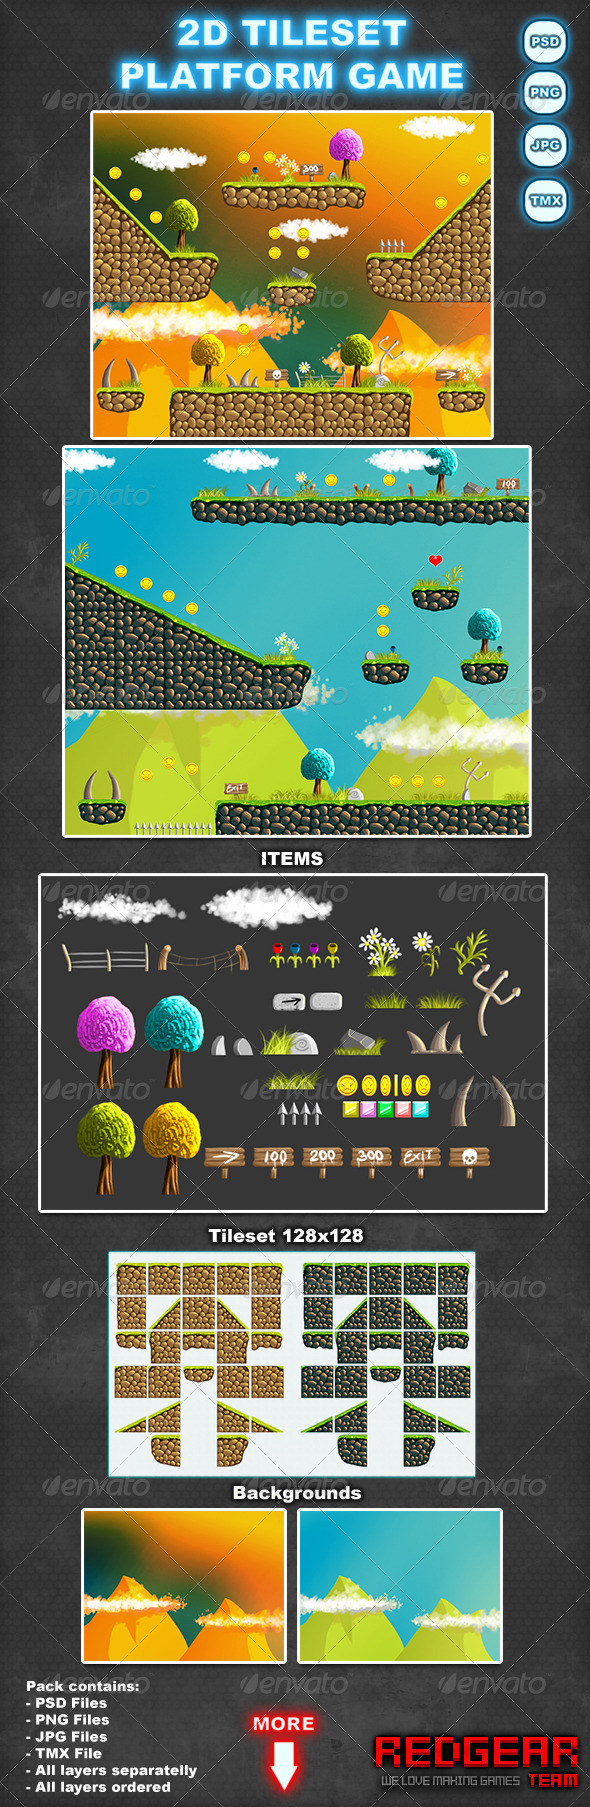 2D tileset platform game - Scenes Illustrations